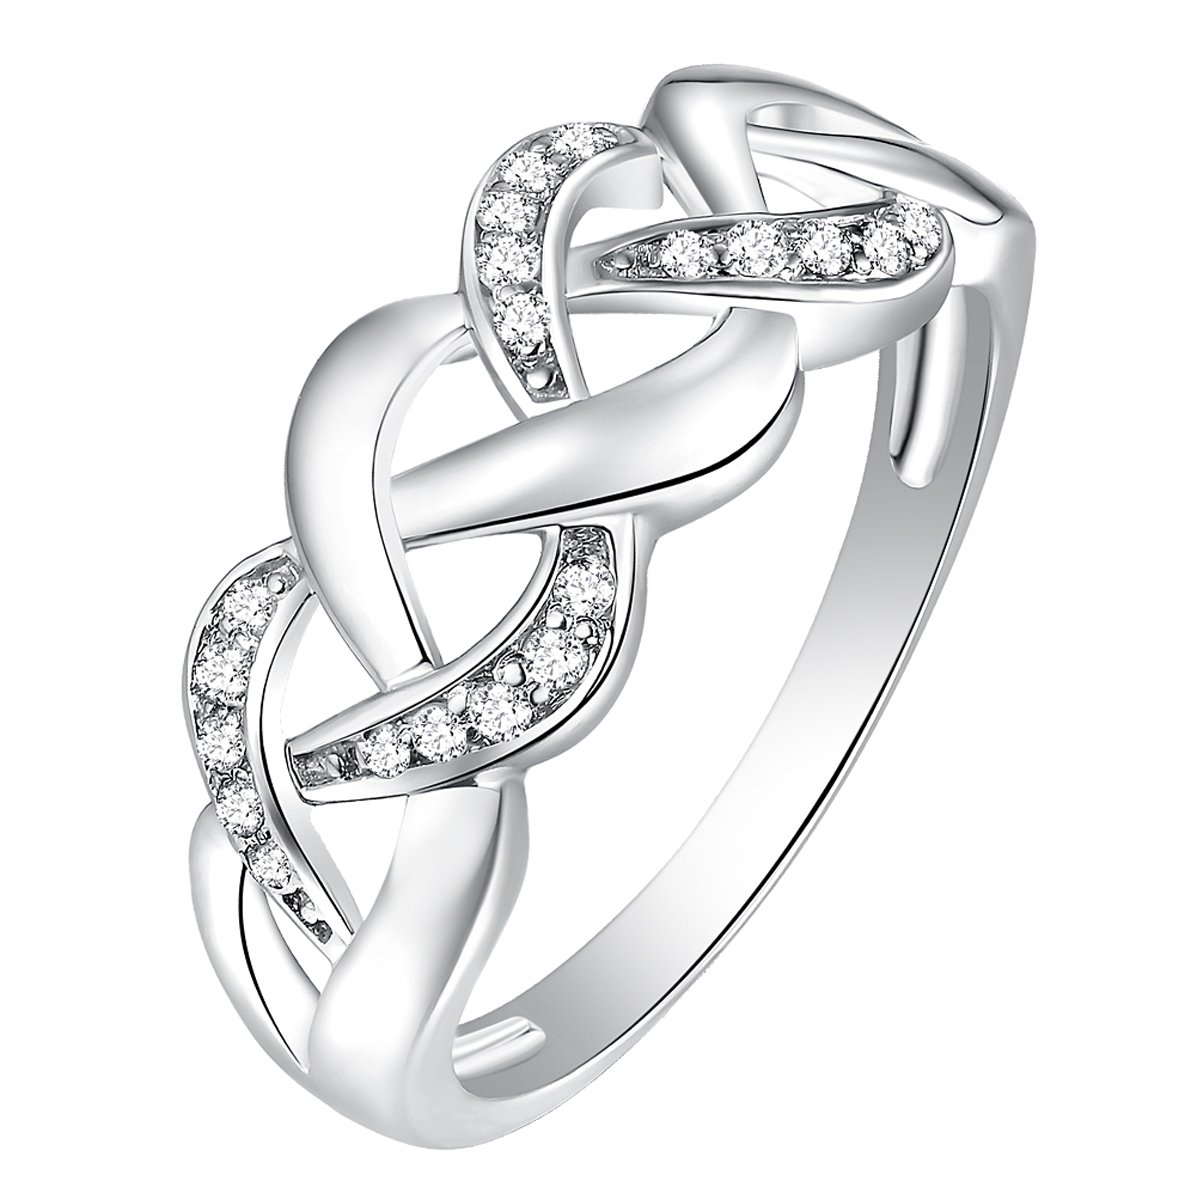 925 Sterling Silver Braided Weave Celtic Engagement Band Ring Size 7 (0.13 Ct., G-H Color, SI2-SI3 Clarity)